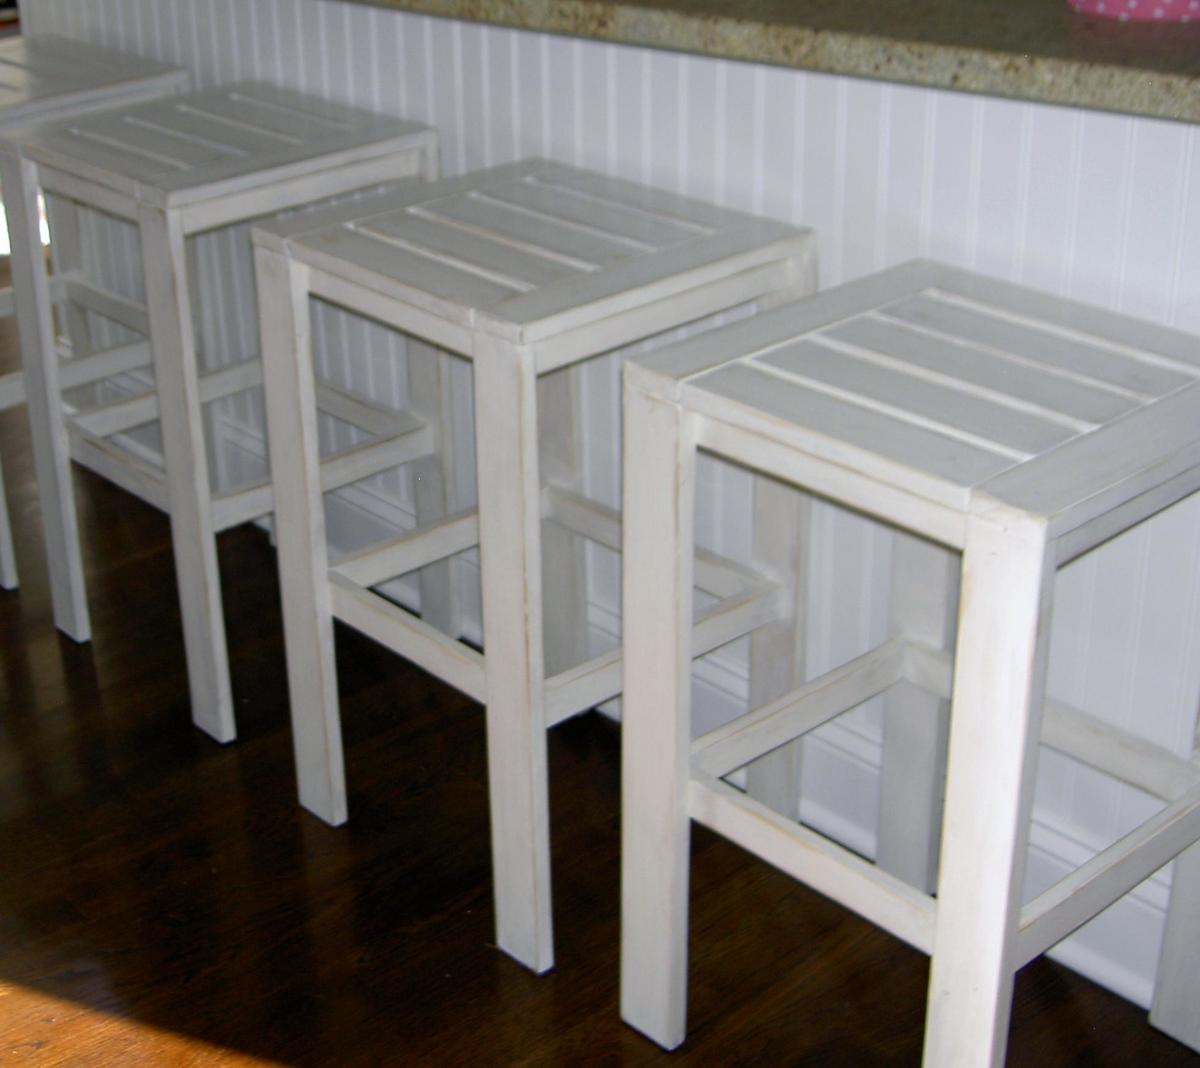 Stools For The Bar Table For The Simple Outdoor Collection Ana White